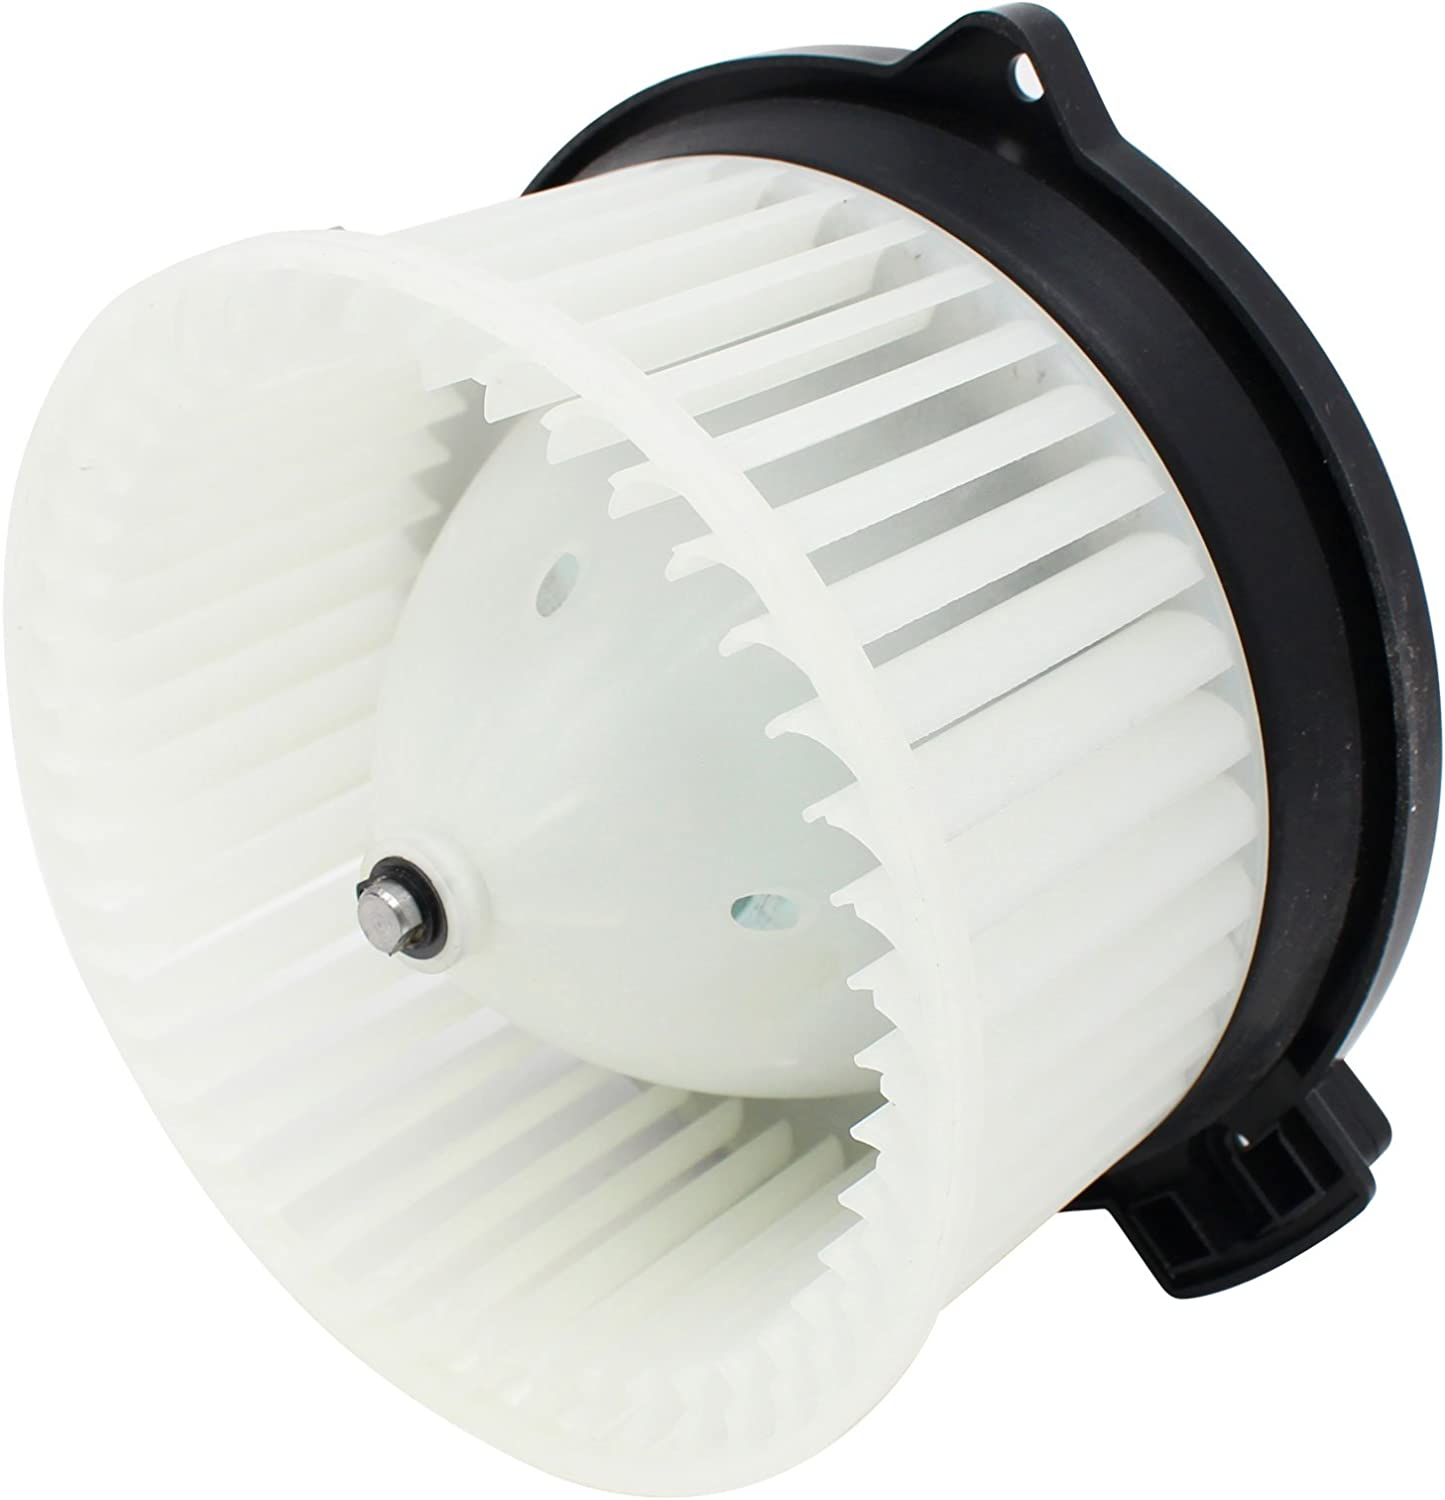 Compatible 79310-SR3-A01 Fan Motor Assembly Replacement Blower Assembly for 1998 Honda Civic EX Coupe 2-Door 1.6L